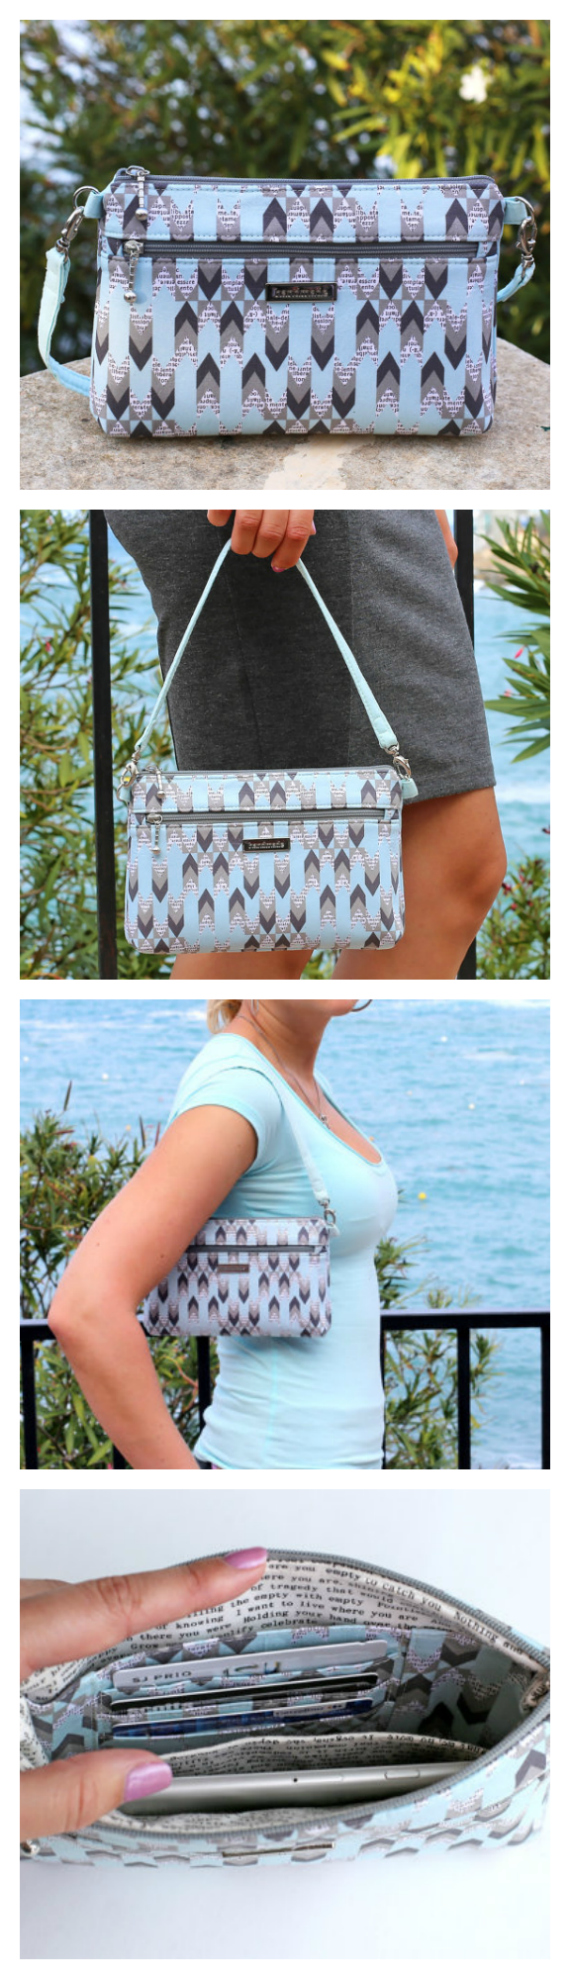 Denver Double Zip Bag (Small Zipper Handbag) sewing pattern